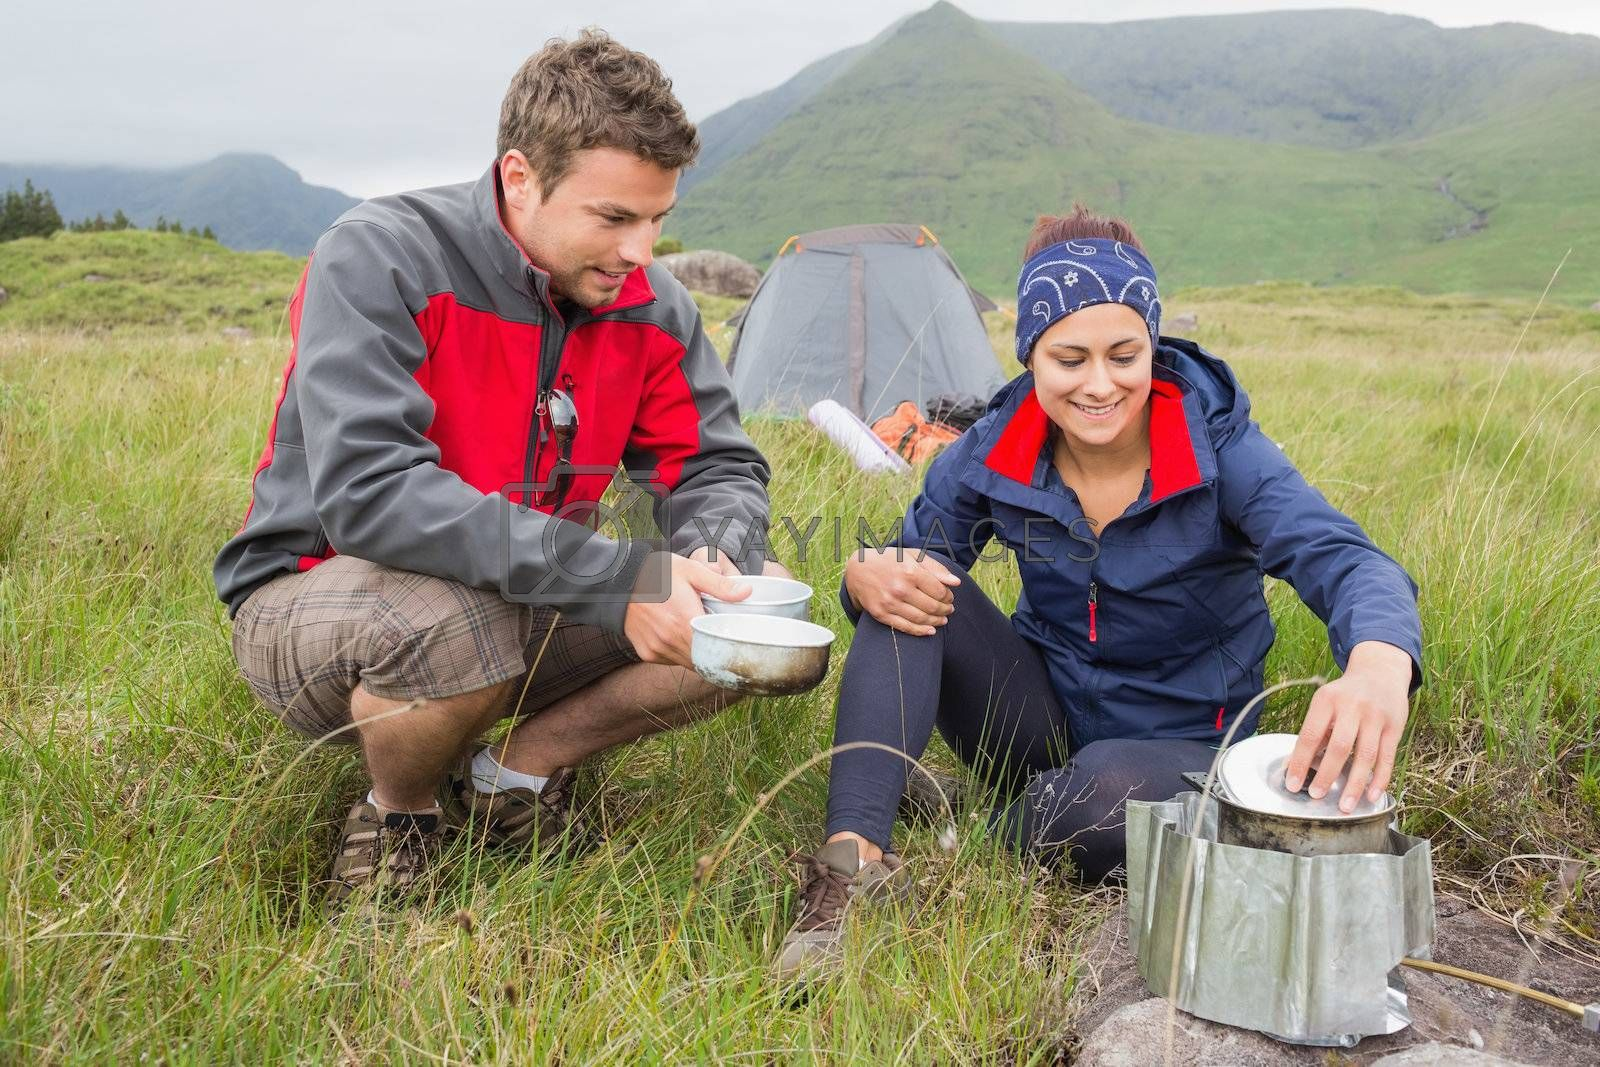 Couple cooking outside on camping trip by Wavebreakmedia